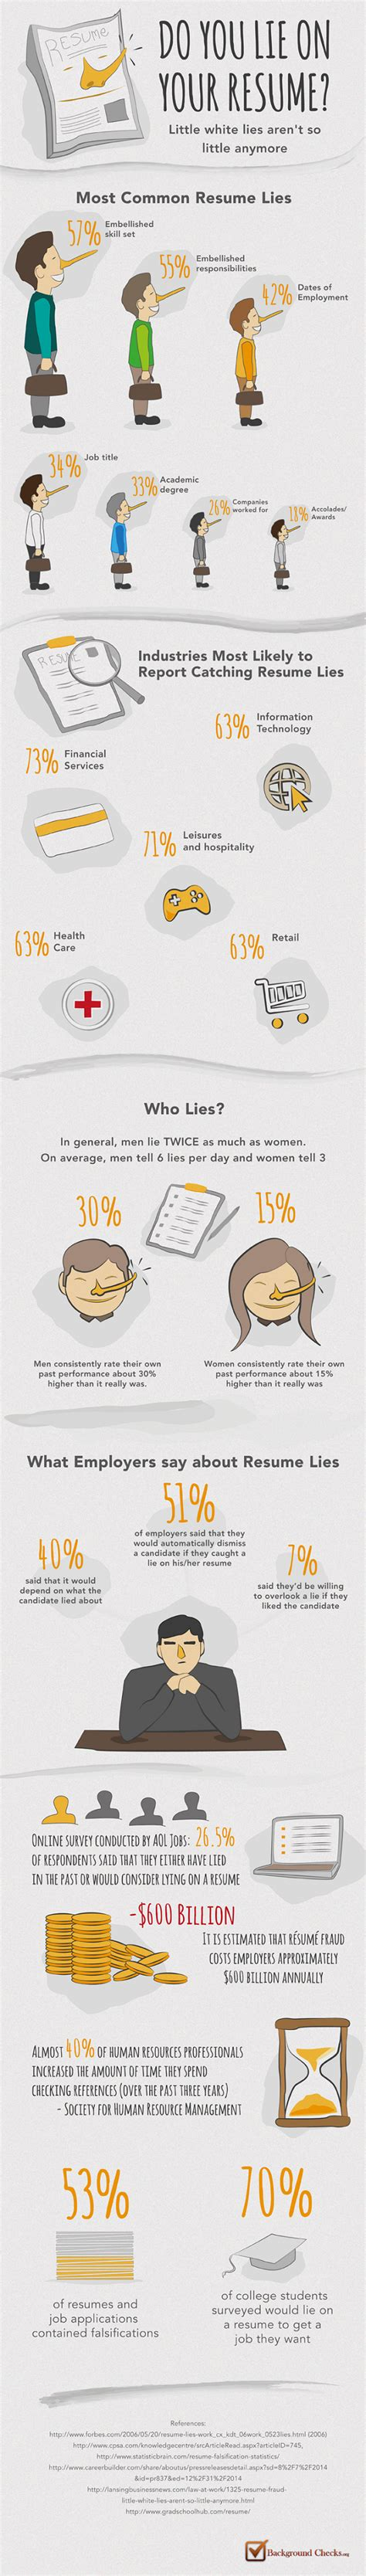 lying on a resume is unethical 28 images harvard